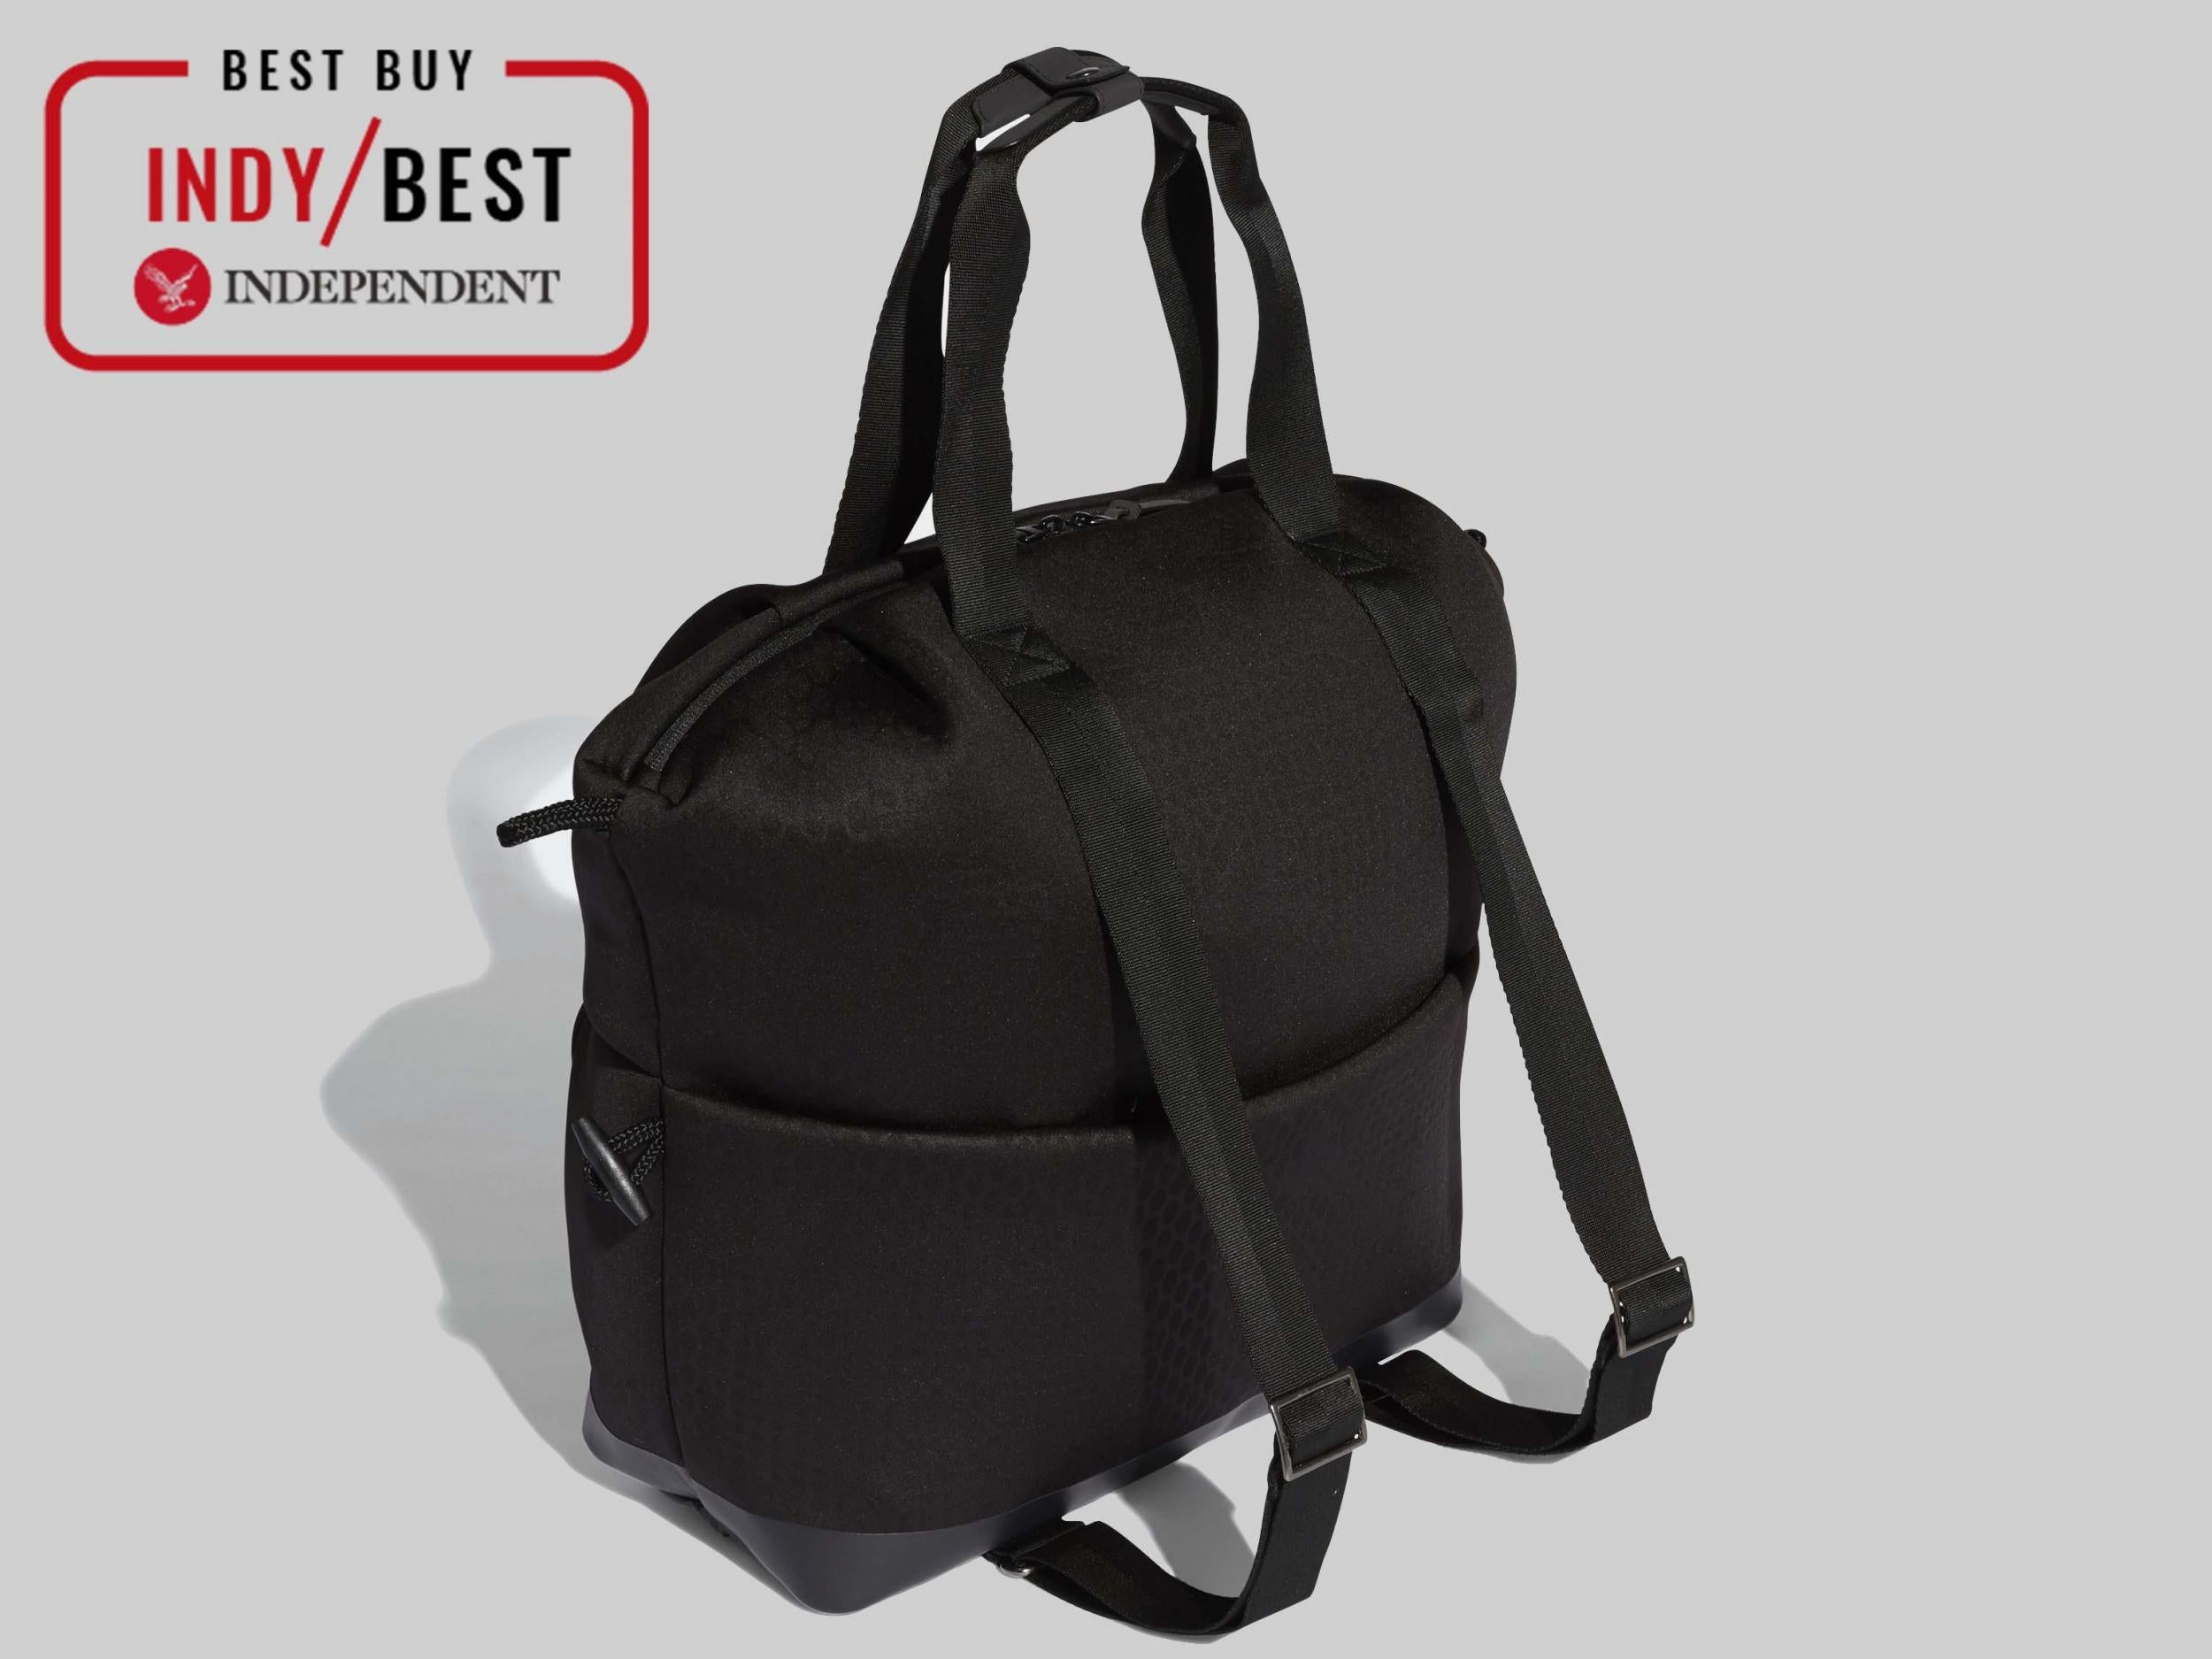 de291174d449 11 best gym bags for women | The Independent